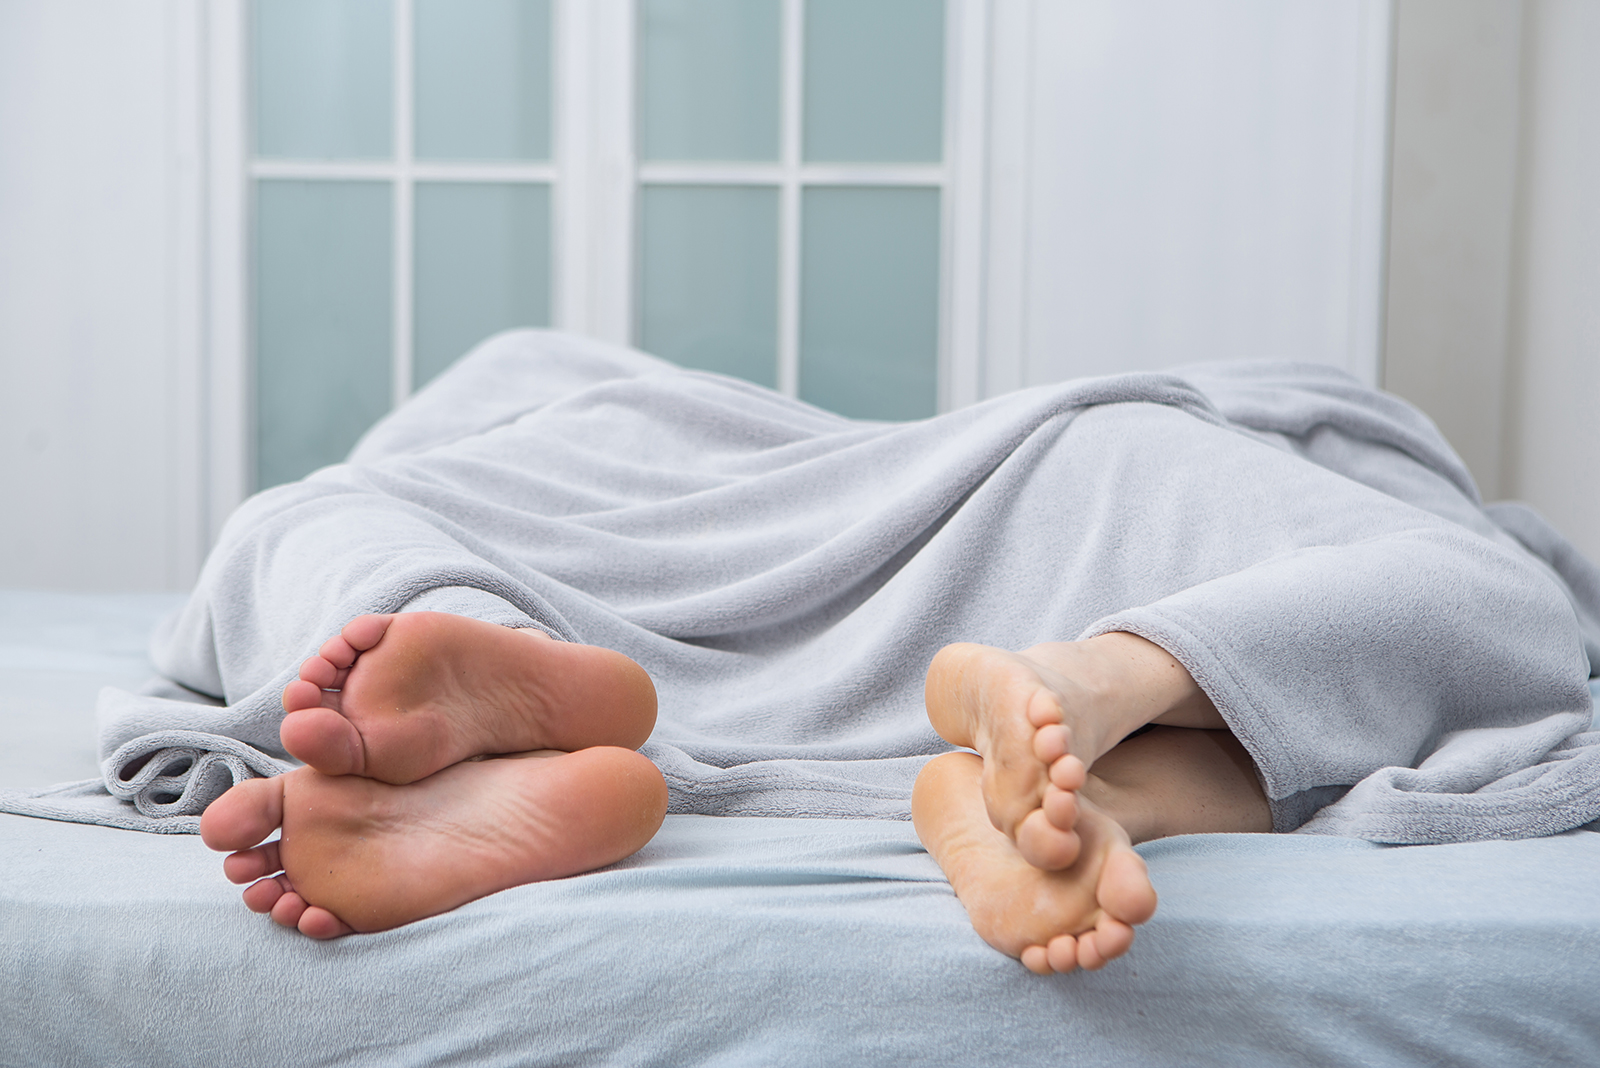 Couples struggle with sleep problems in the Covid-19 pandemic